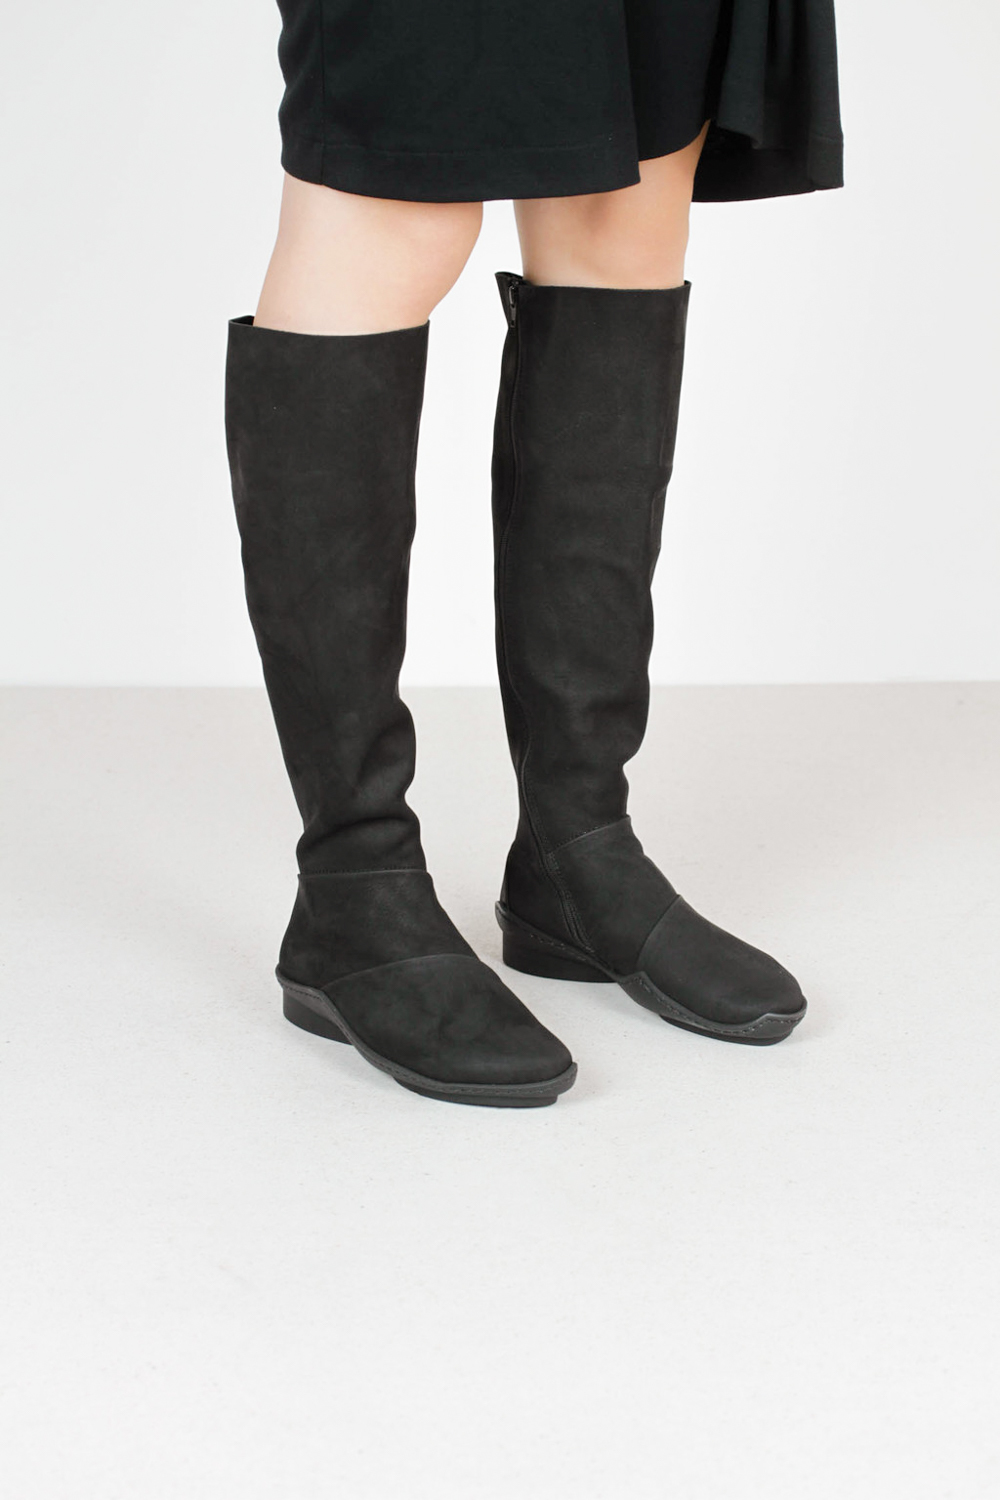 Trippen spate f mse blk leather boots